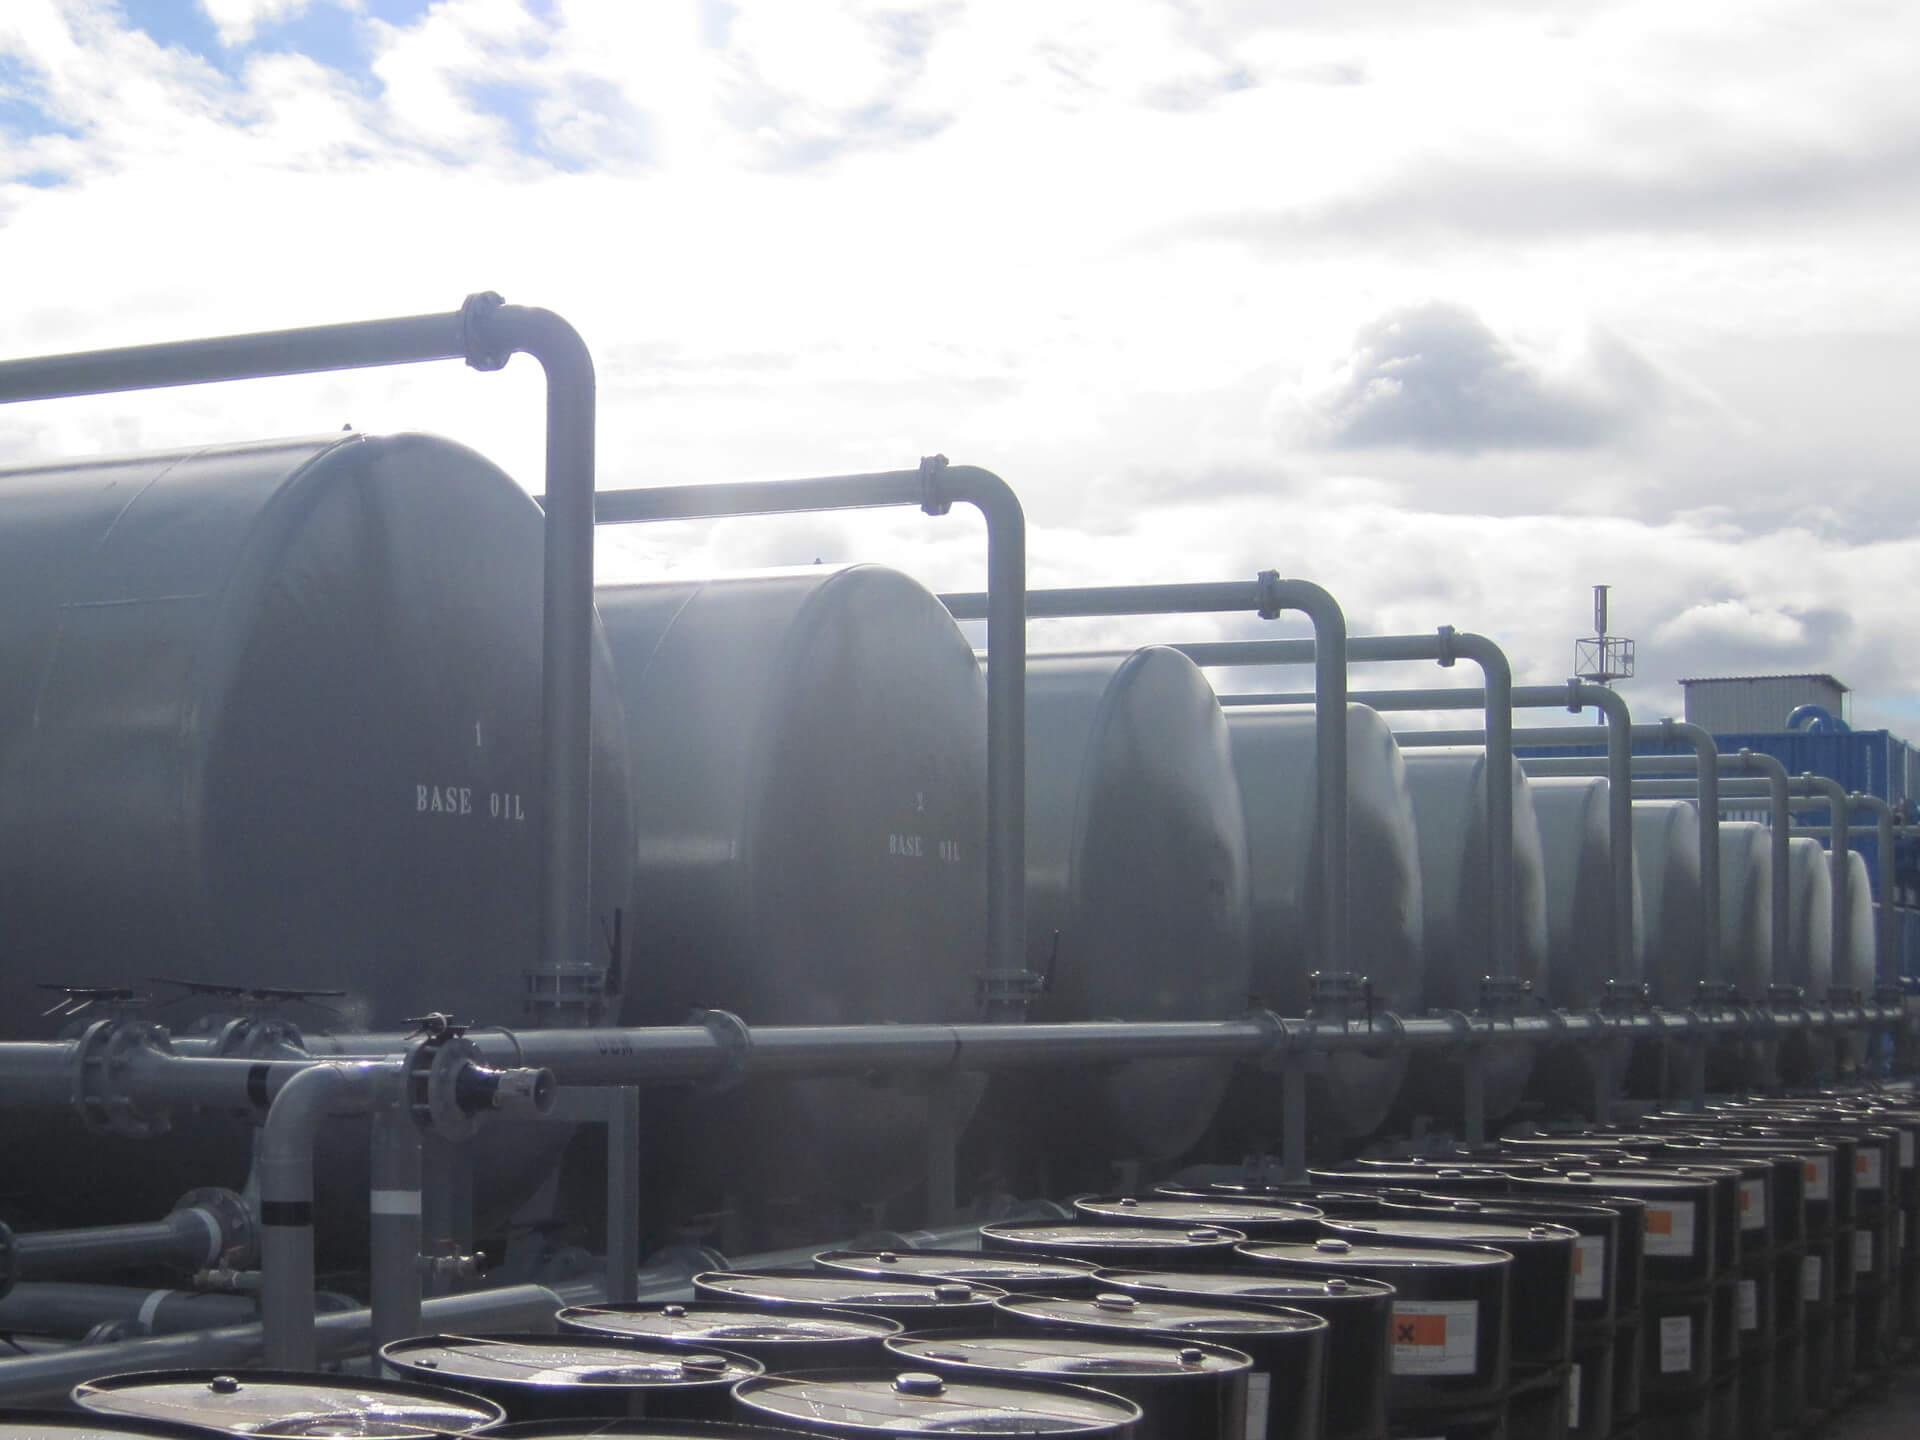 Drilling fluid storage plant tank refurbishment and piping